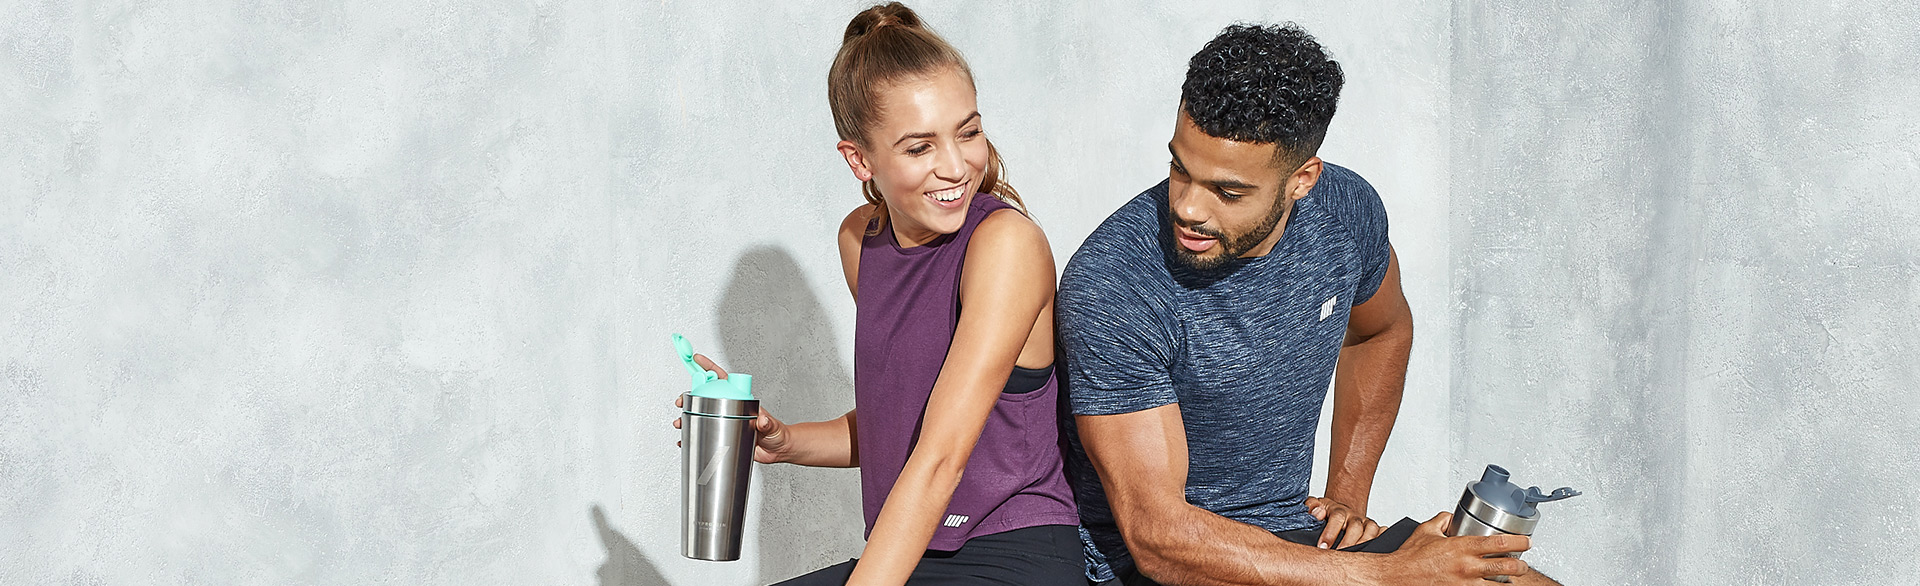 Man and woman drinking protein